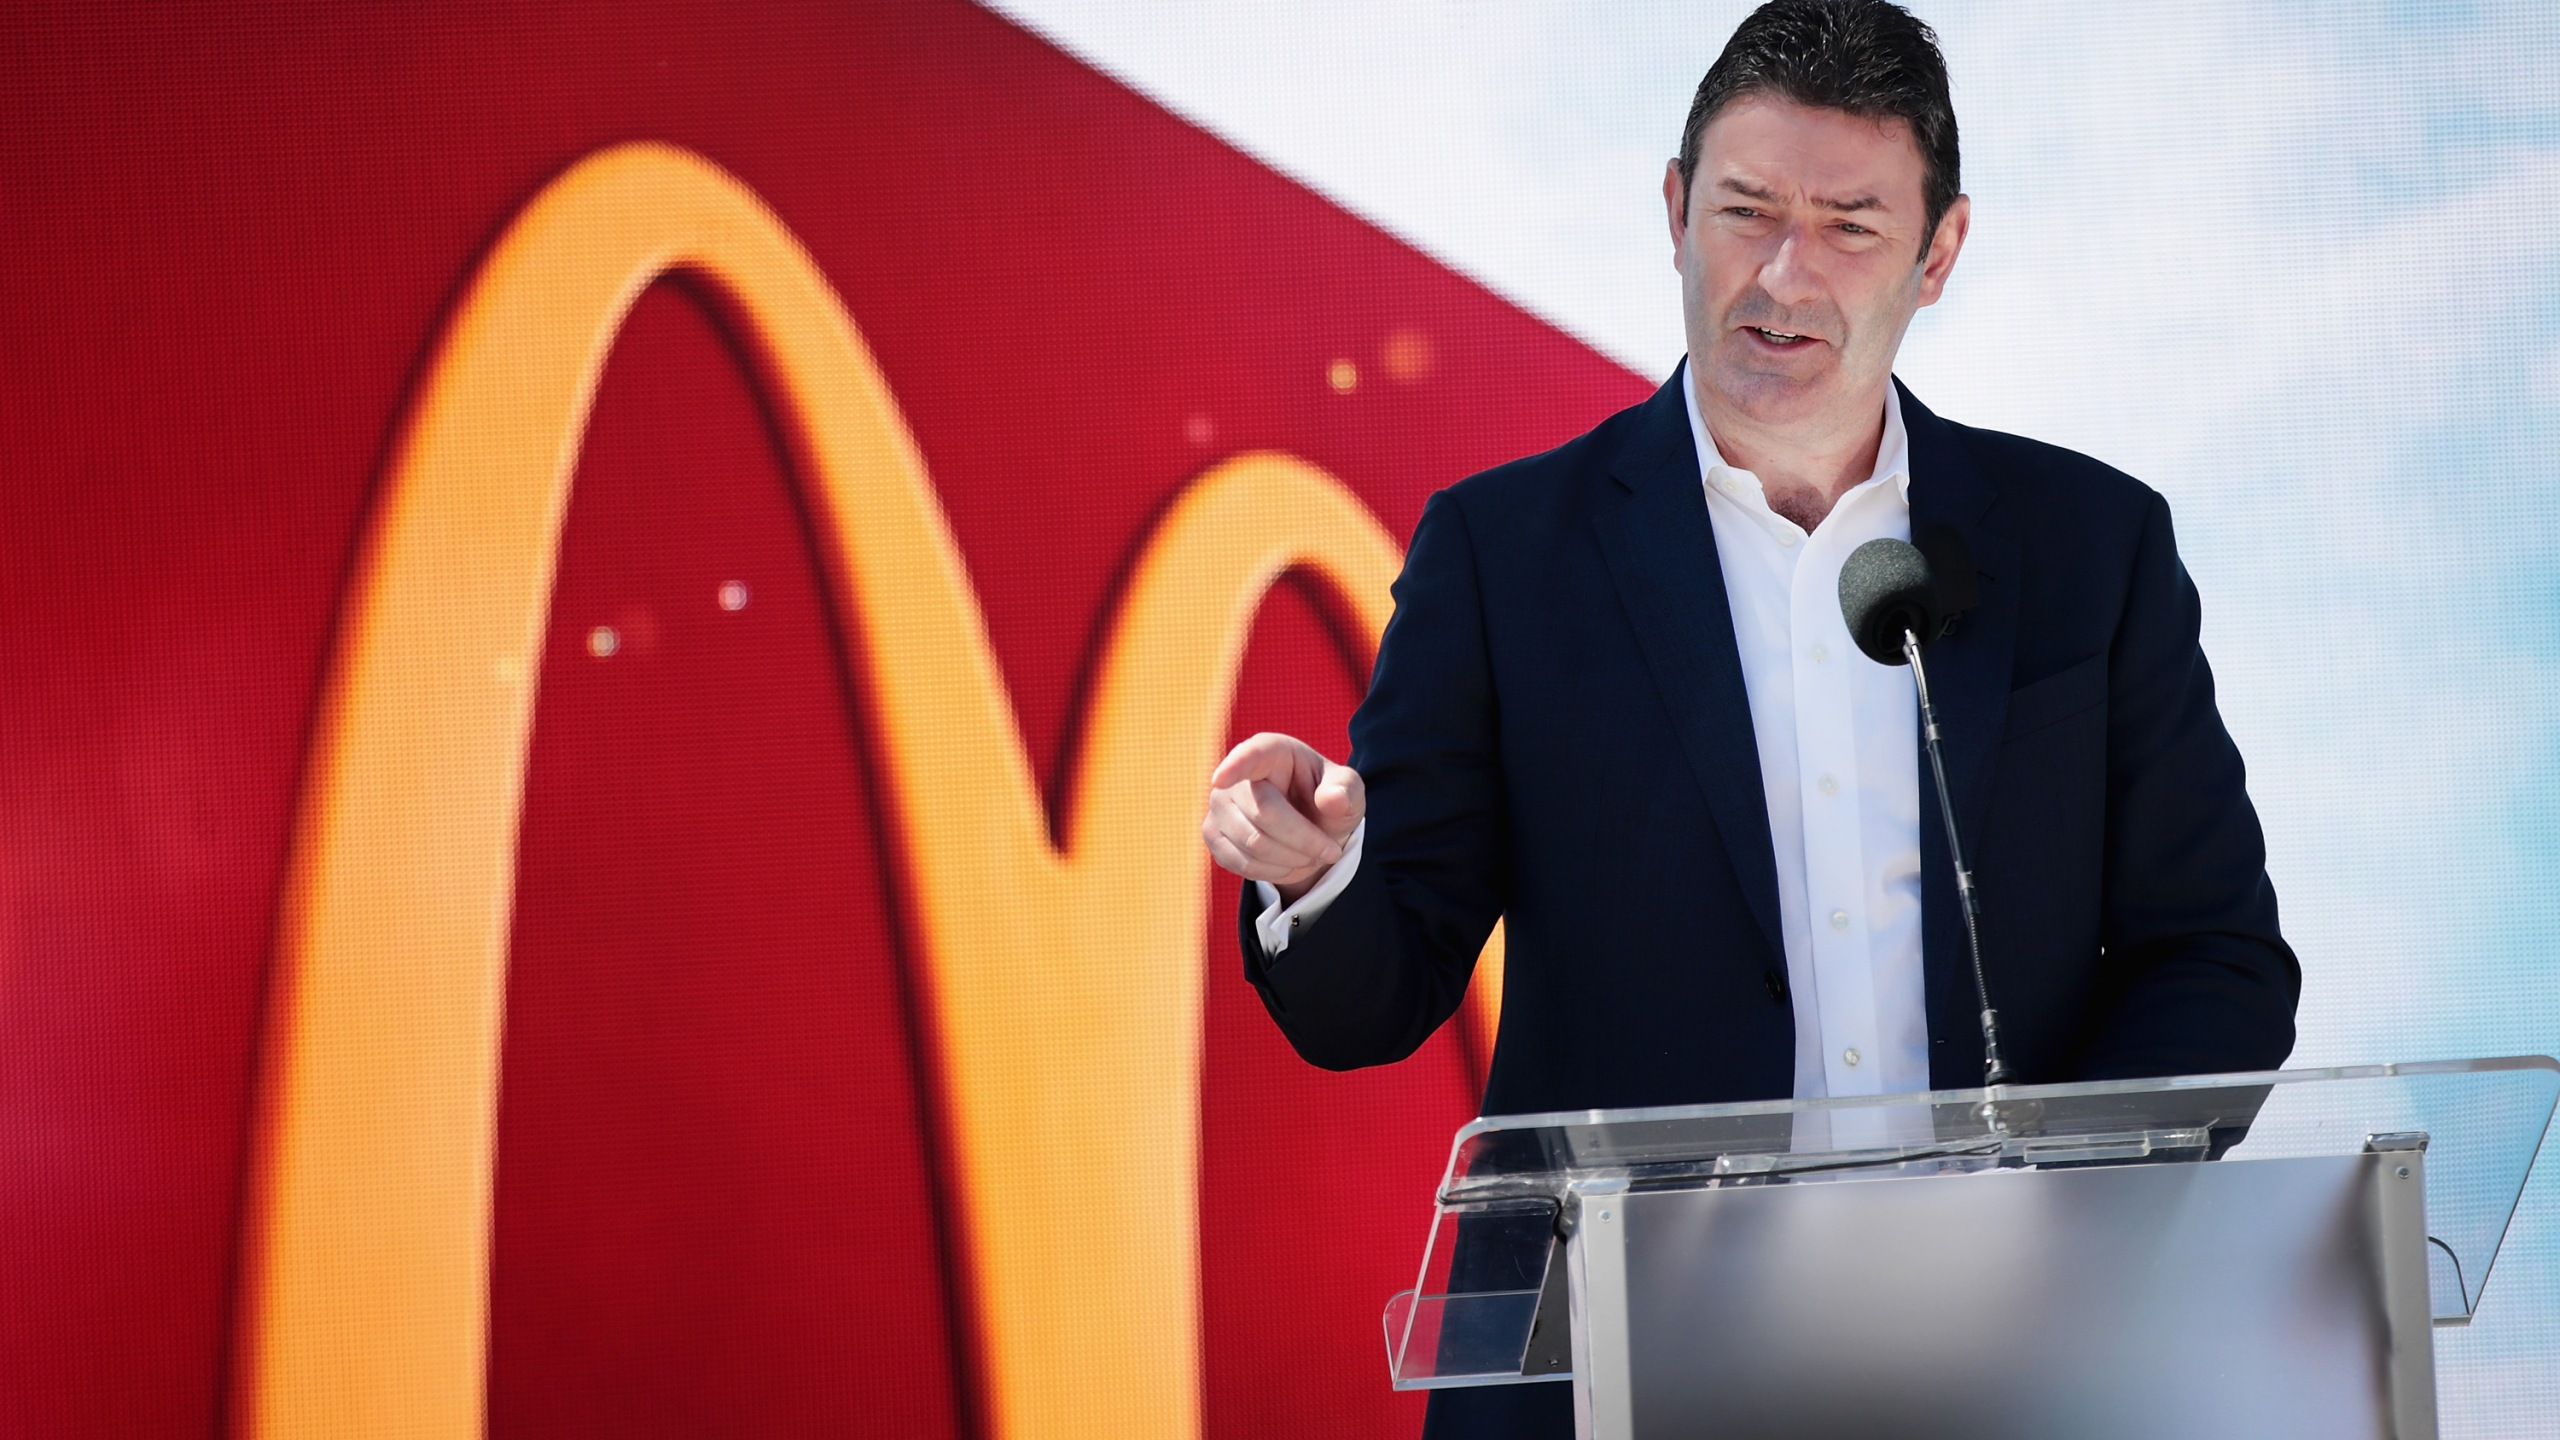 McDonald's CEO Stephen Easterbrook unveils the company's new corporate headquarters during a grand opening ceremony on June 4, 2018, in Chicago, Illinois. (Credit: Scott Olson/Getty Images)